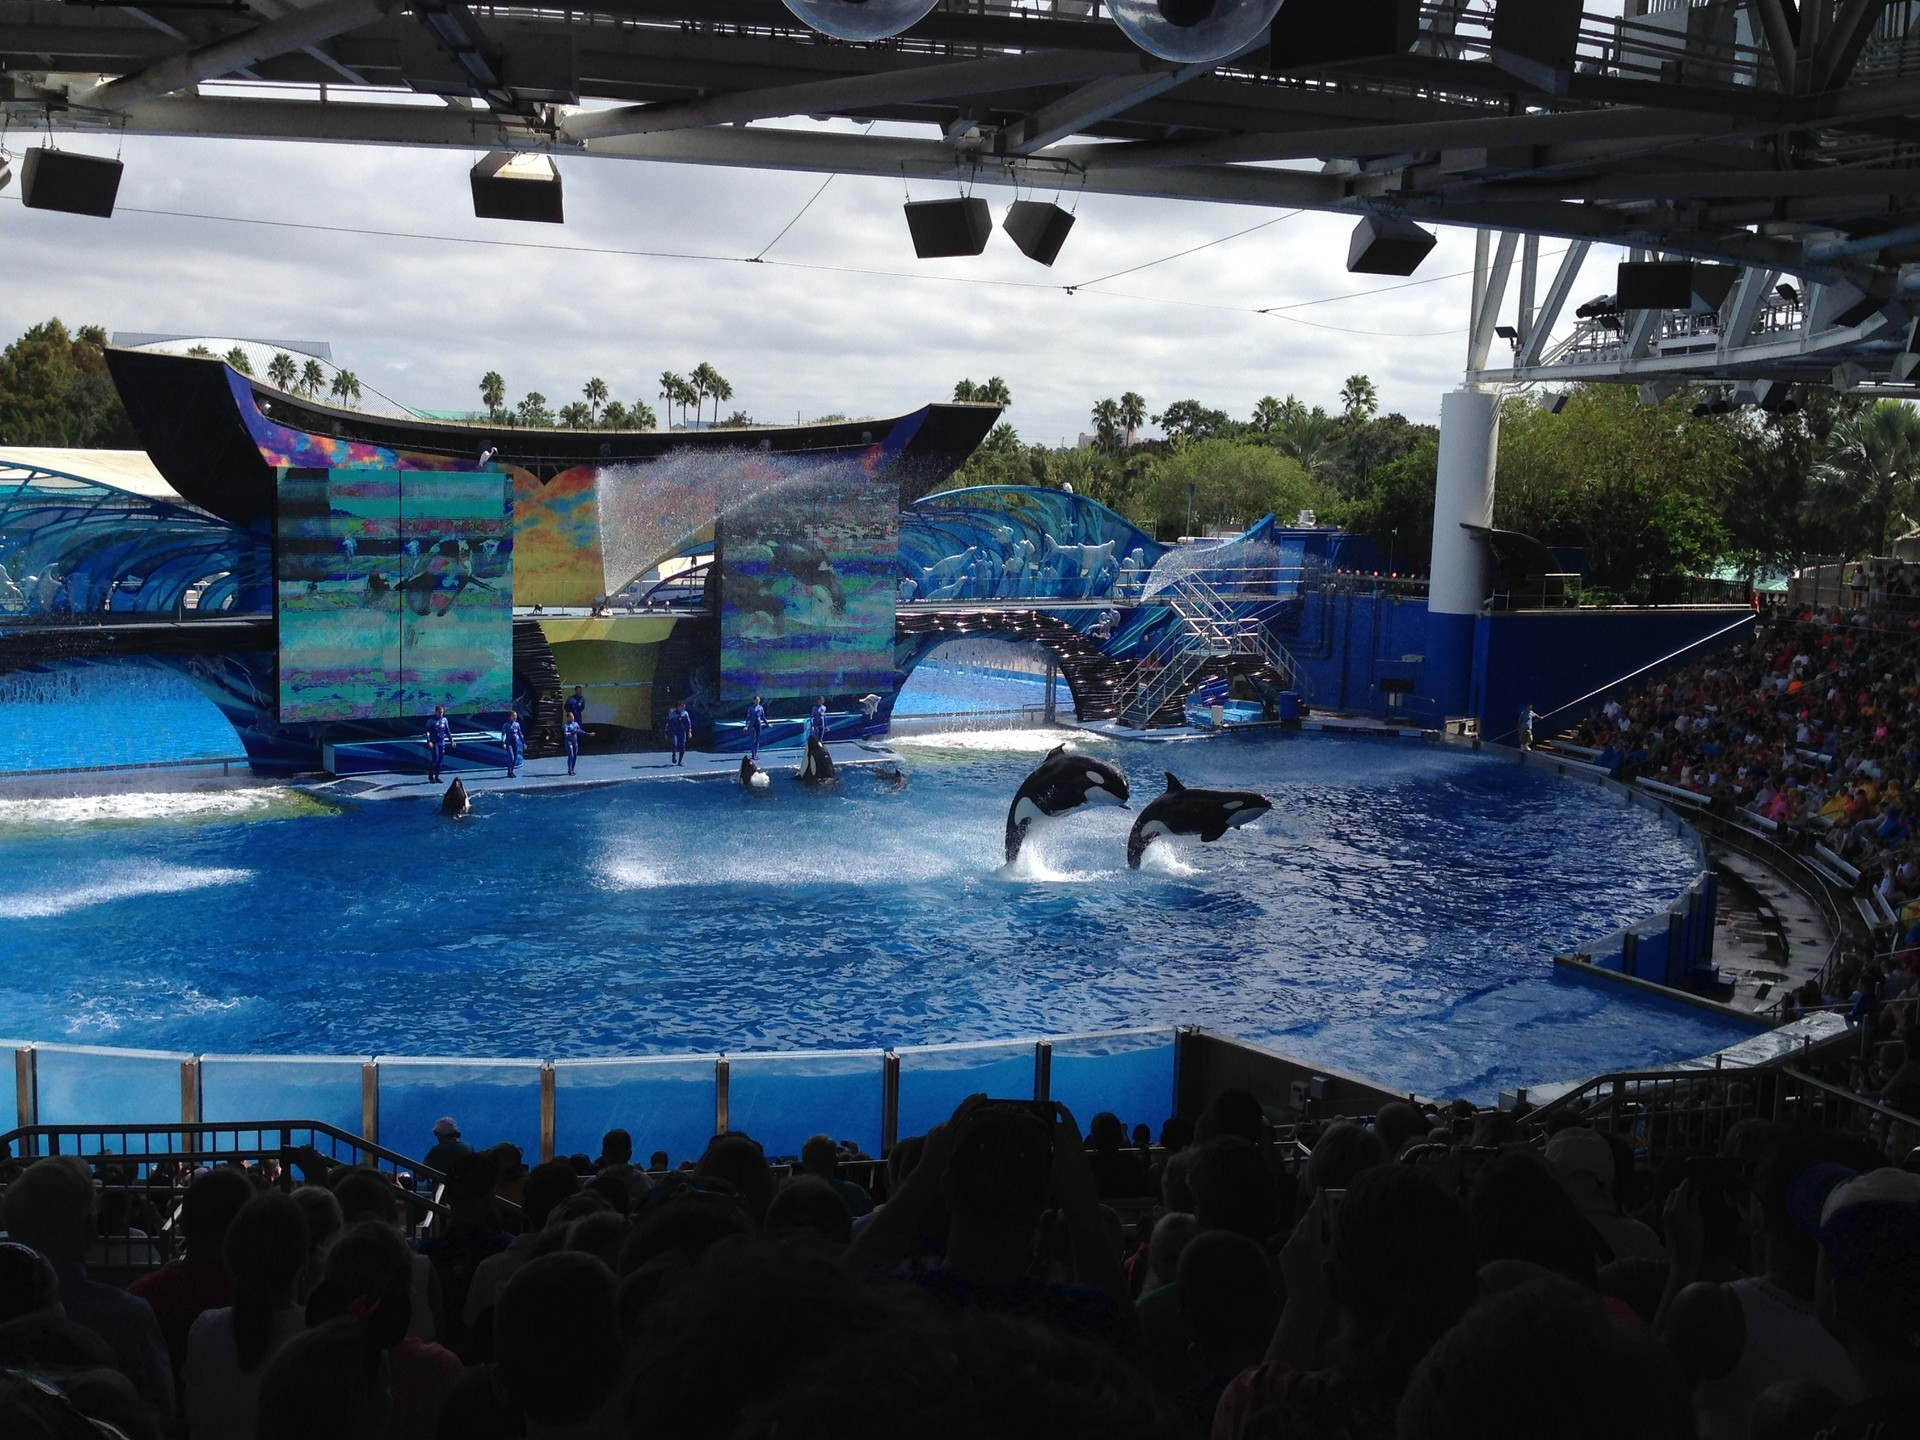 Res: 1920x1440, Shamu Show. Watching the ever elegant whales and dolphins perform!